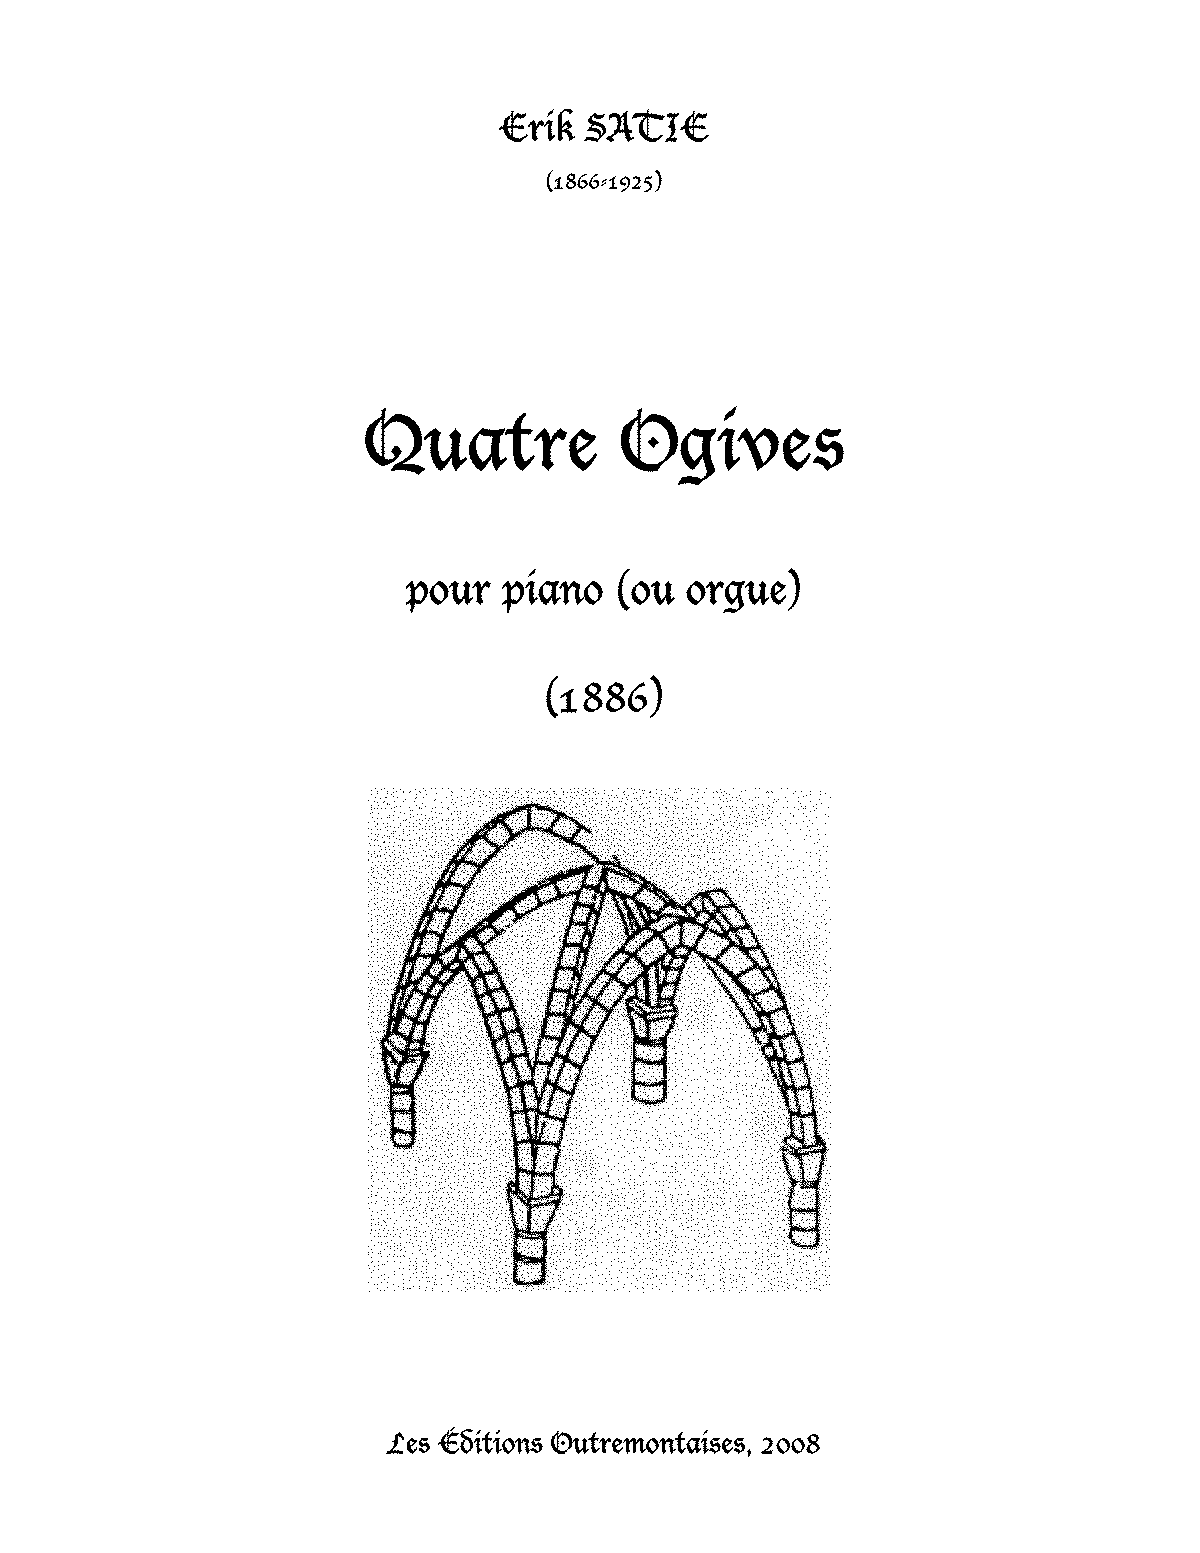 WIMA.36c4-Satie Ogives.pdf